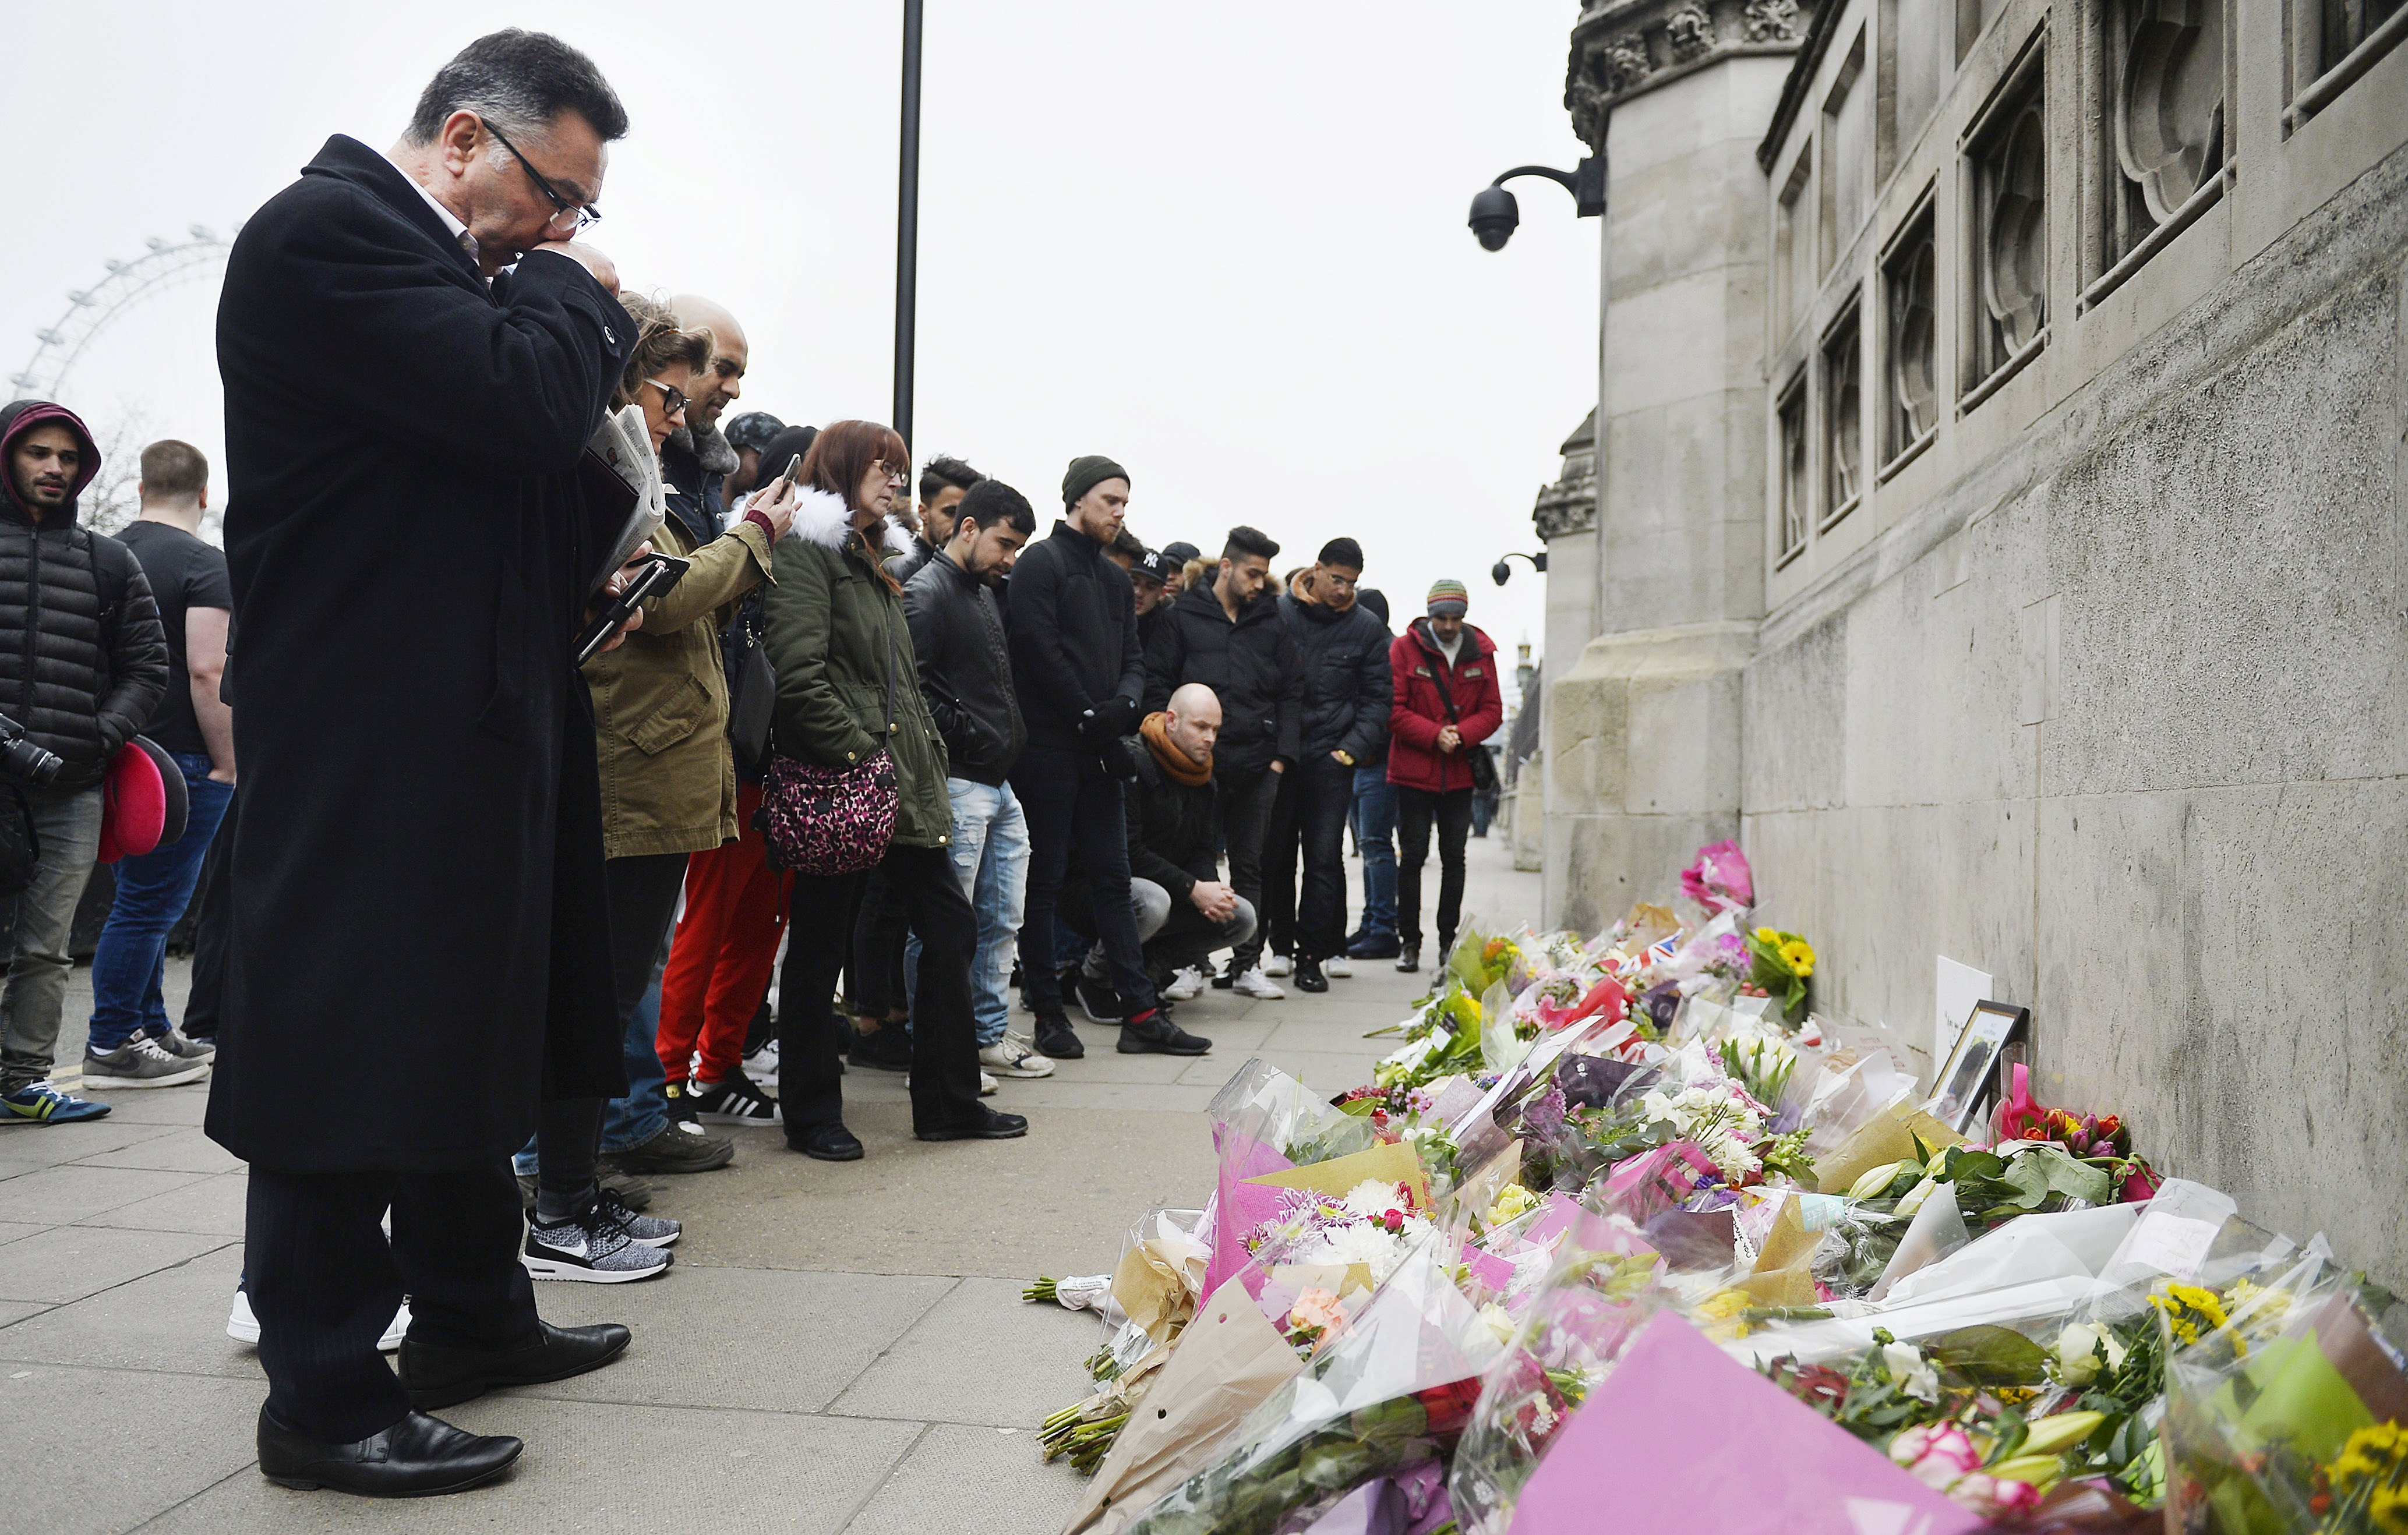 epa05867529 People look at flowers laid in Westminster near to the scene of incidents on 22 March in central London, Britain, 24 March 2017. Scotland Yard said on 24 March 2017 that police have made nine arrests in rela